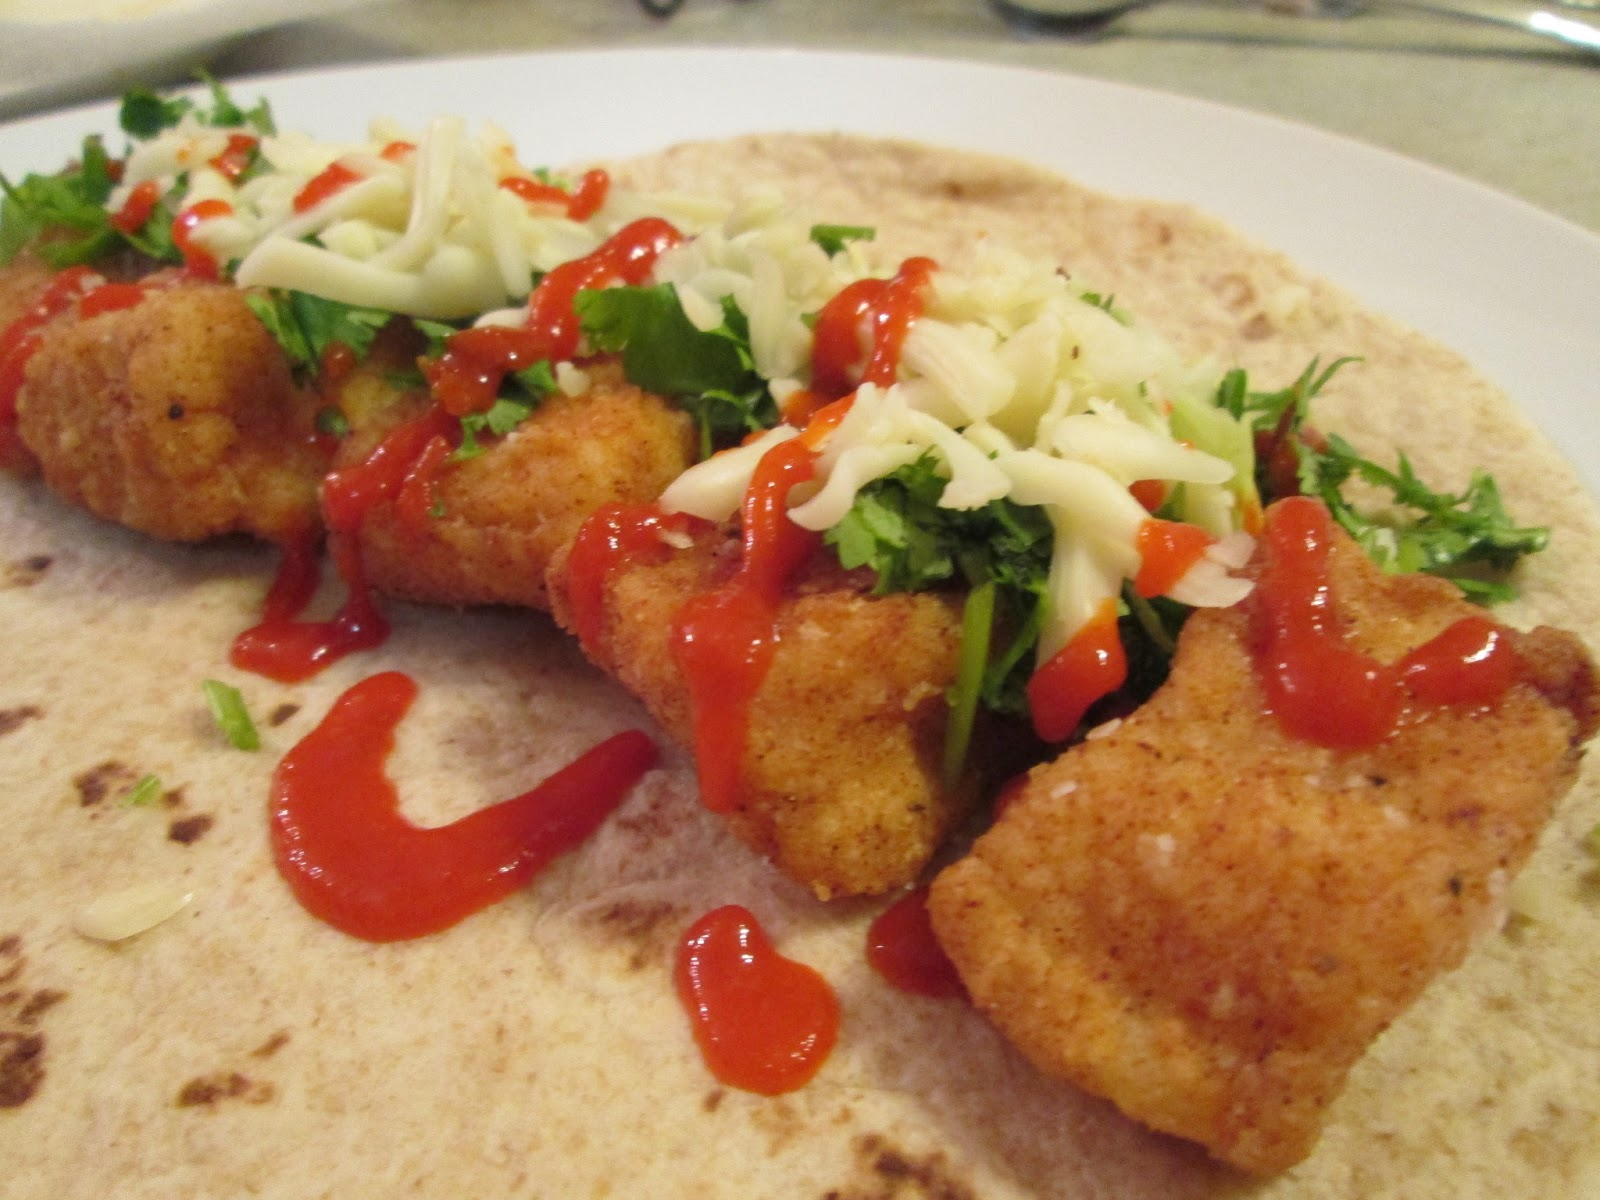 Corcoran Street Kitchen: Fried Fish Tacos - photo#21